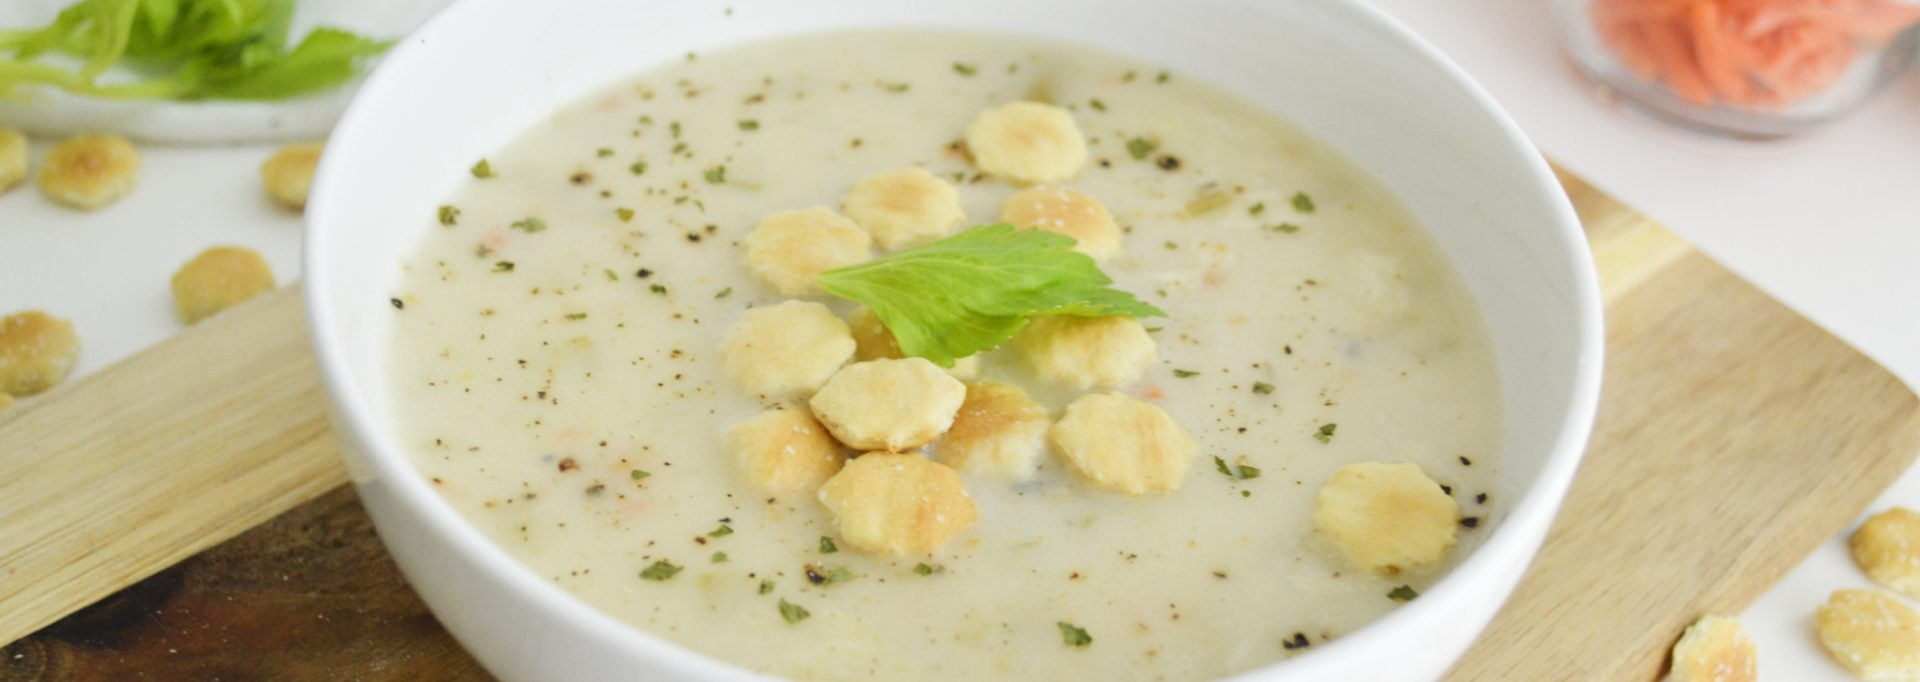 Instant Pot Clam Chowder Feature